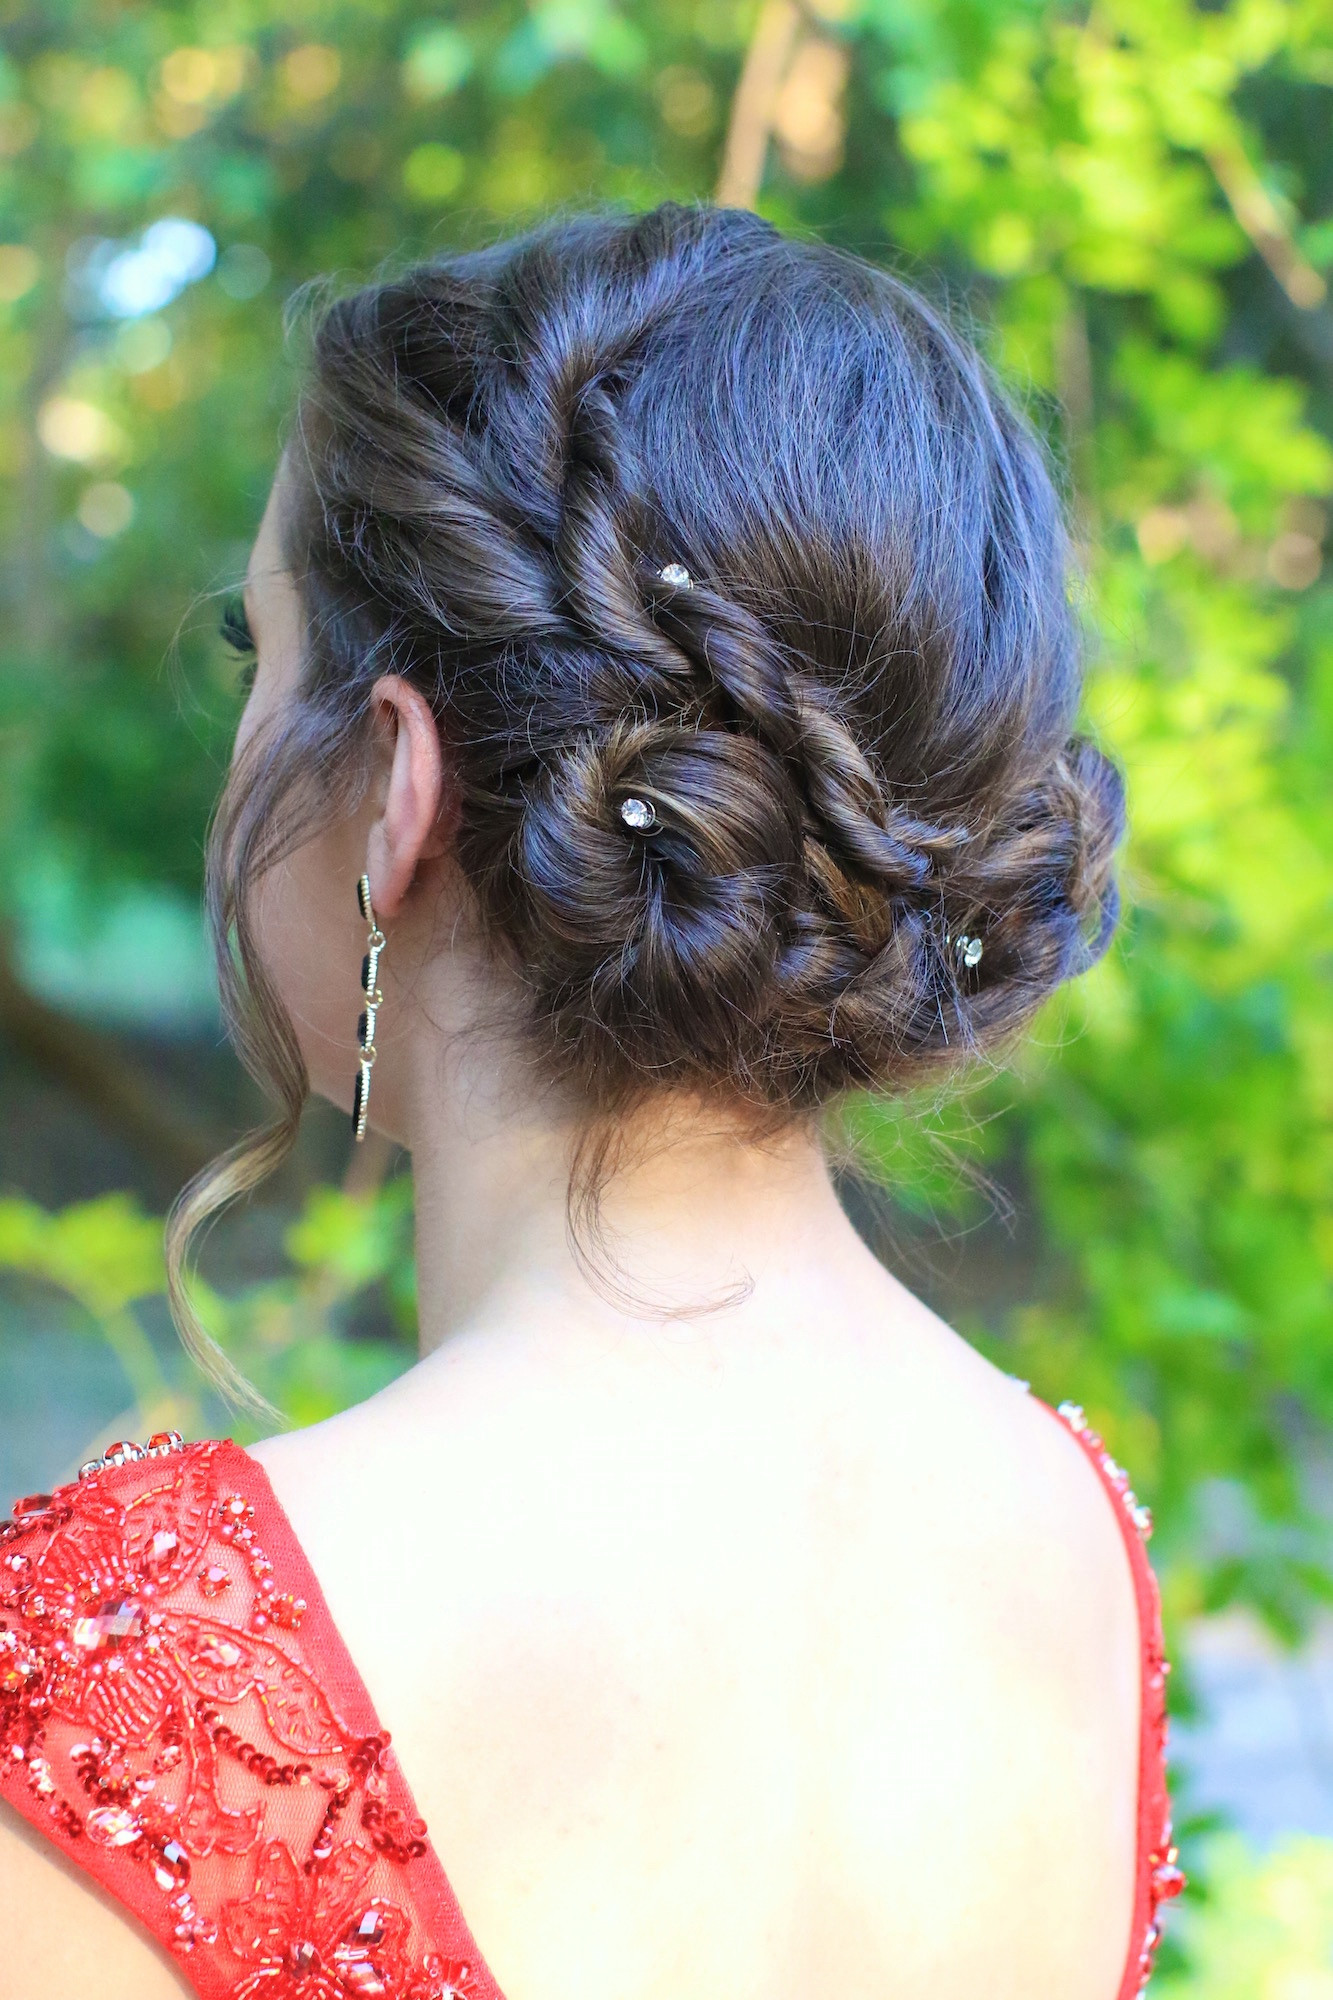 Best ideas about Twisty Hairstyles For Girls . Save or Pin Rope Twist Updo Home ing Hairstyles Now.